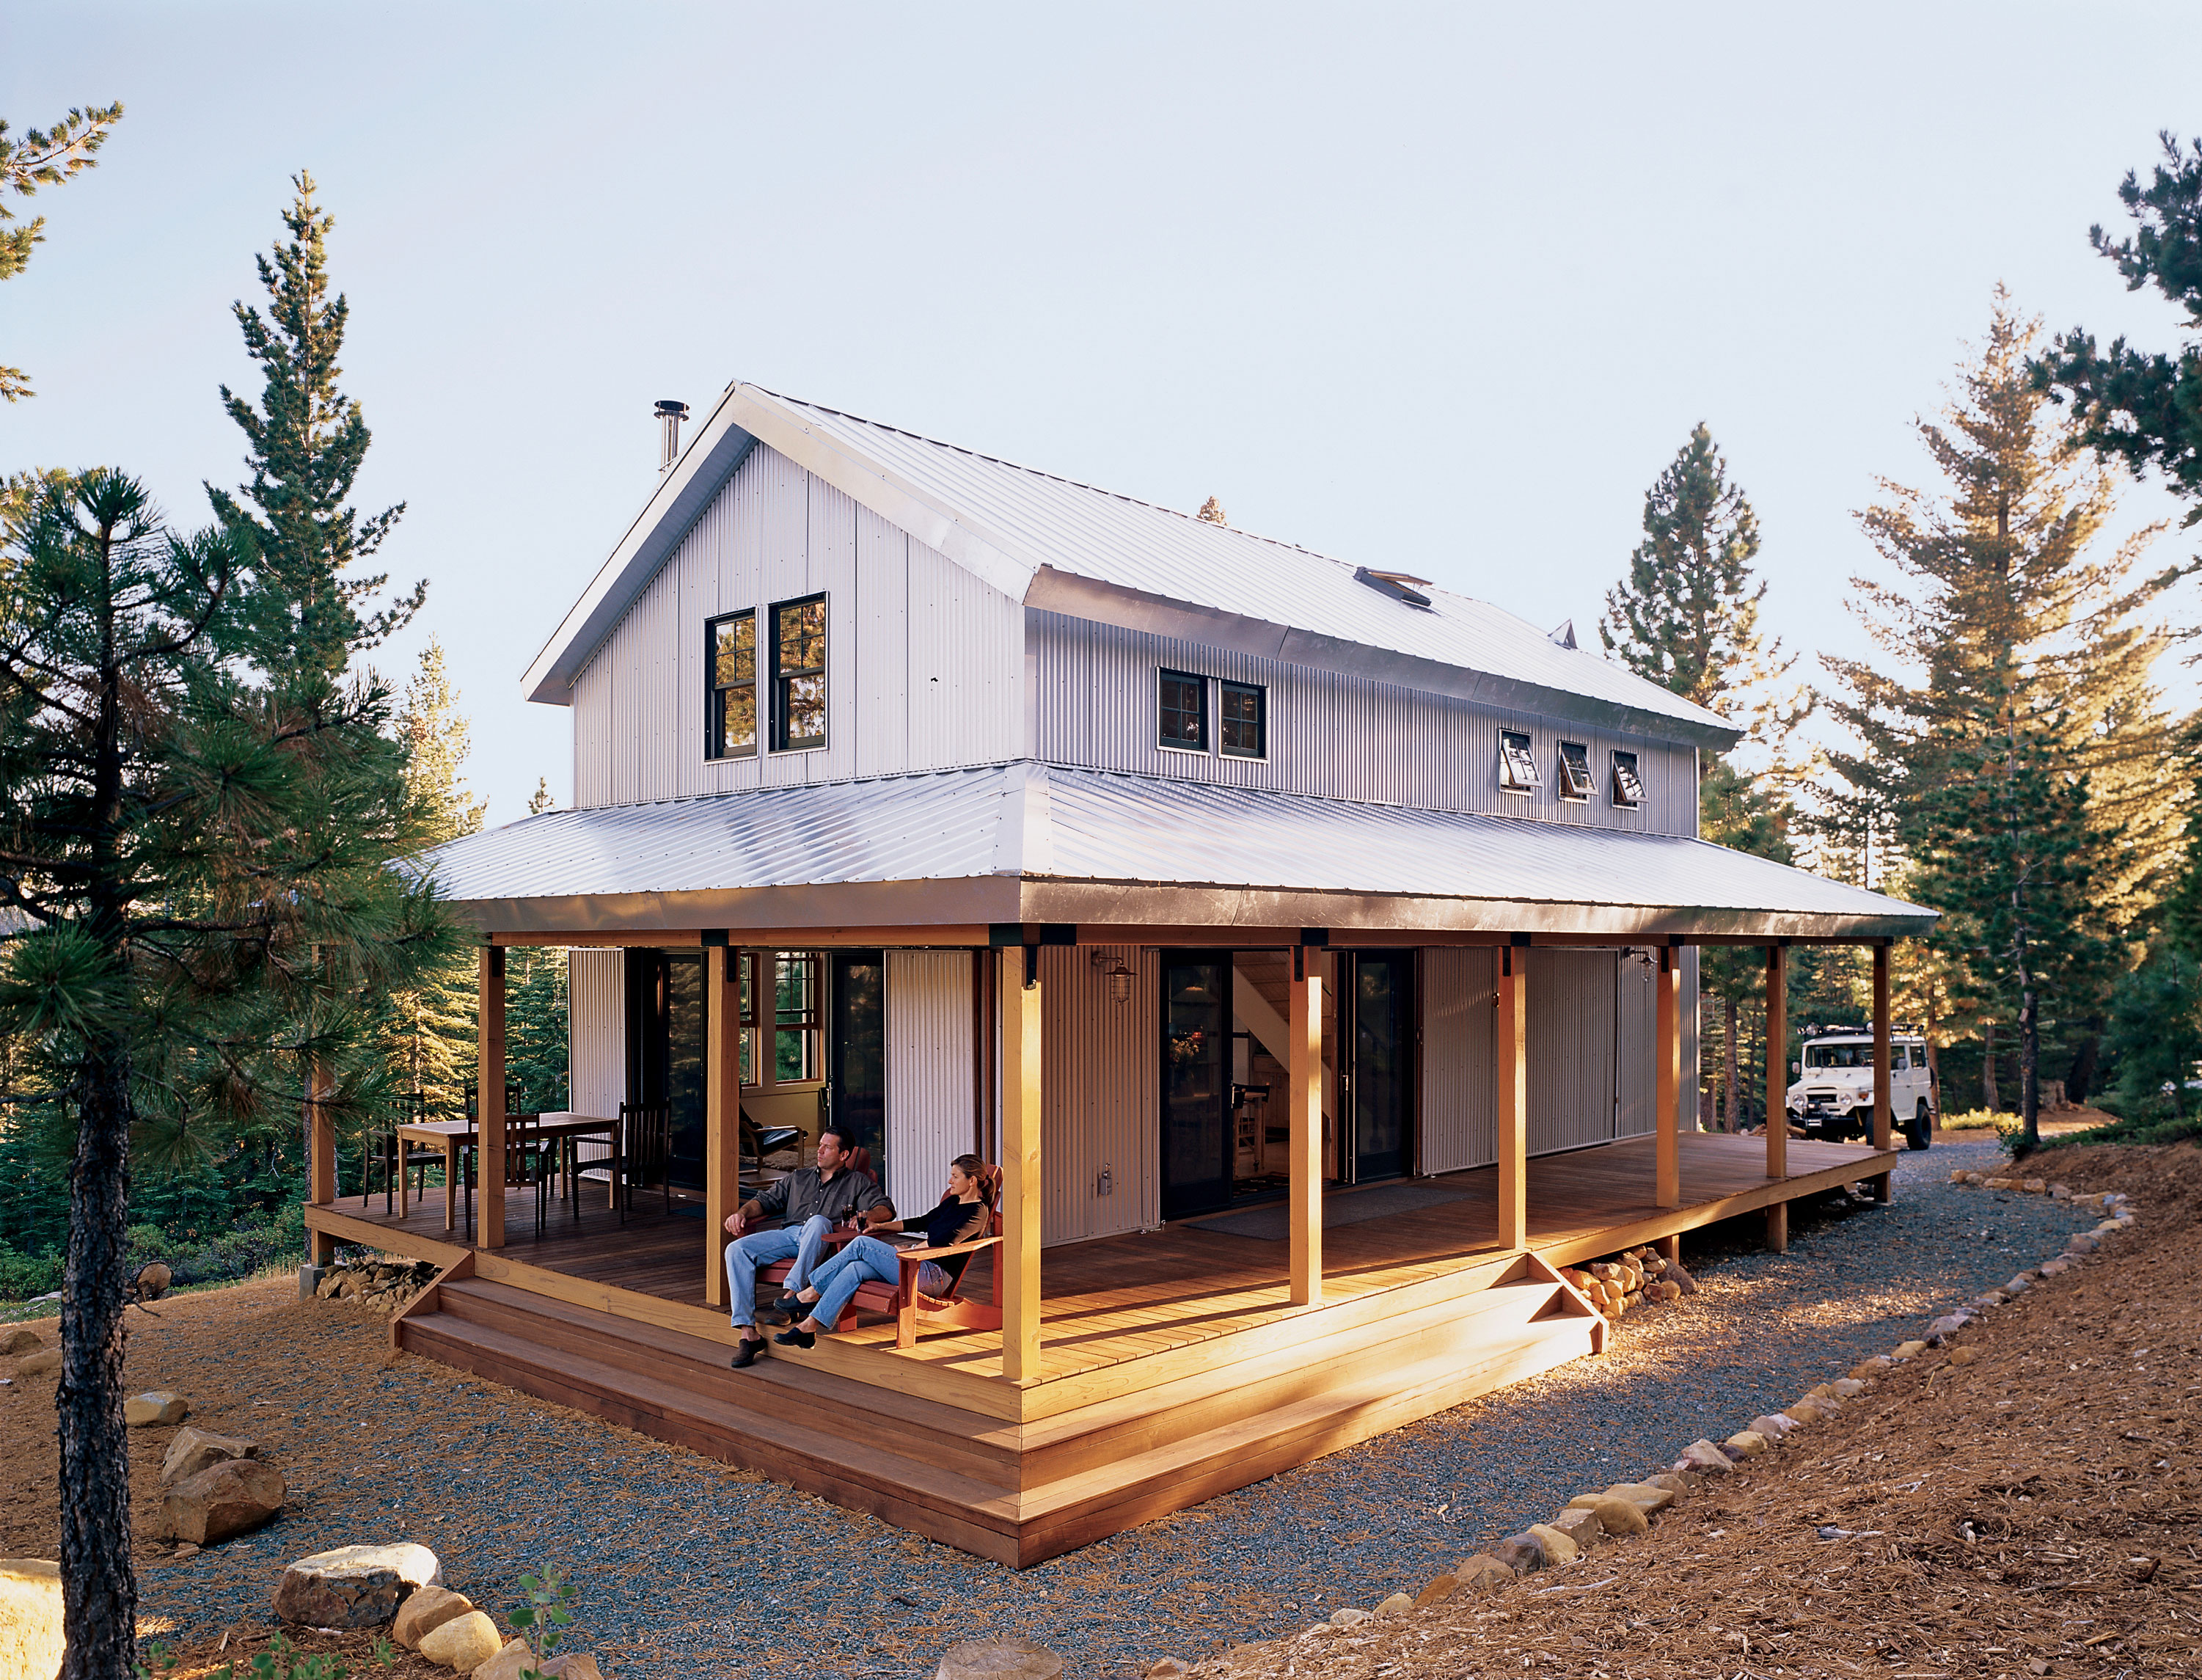 Fabulous Off Grid Cabin Sunset Magazine Wrap Around Porch Name Wrap Around Porch Cost curbed Wrap Around Porch